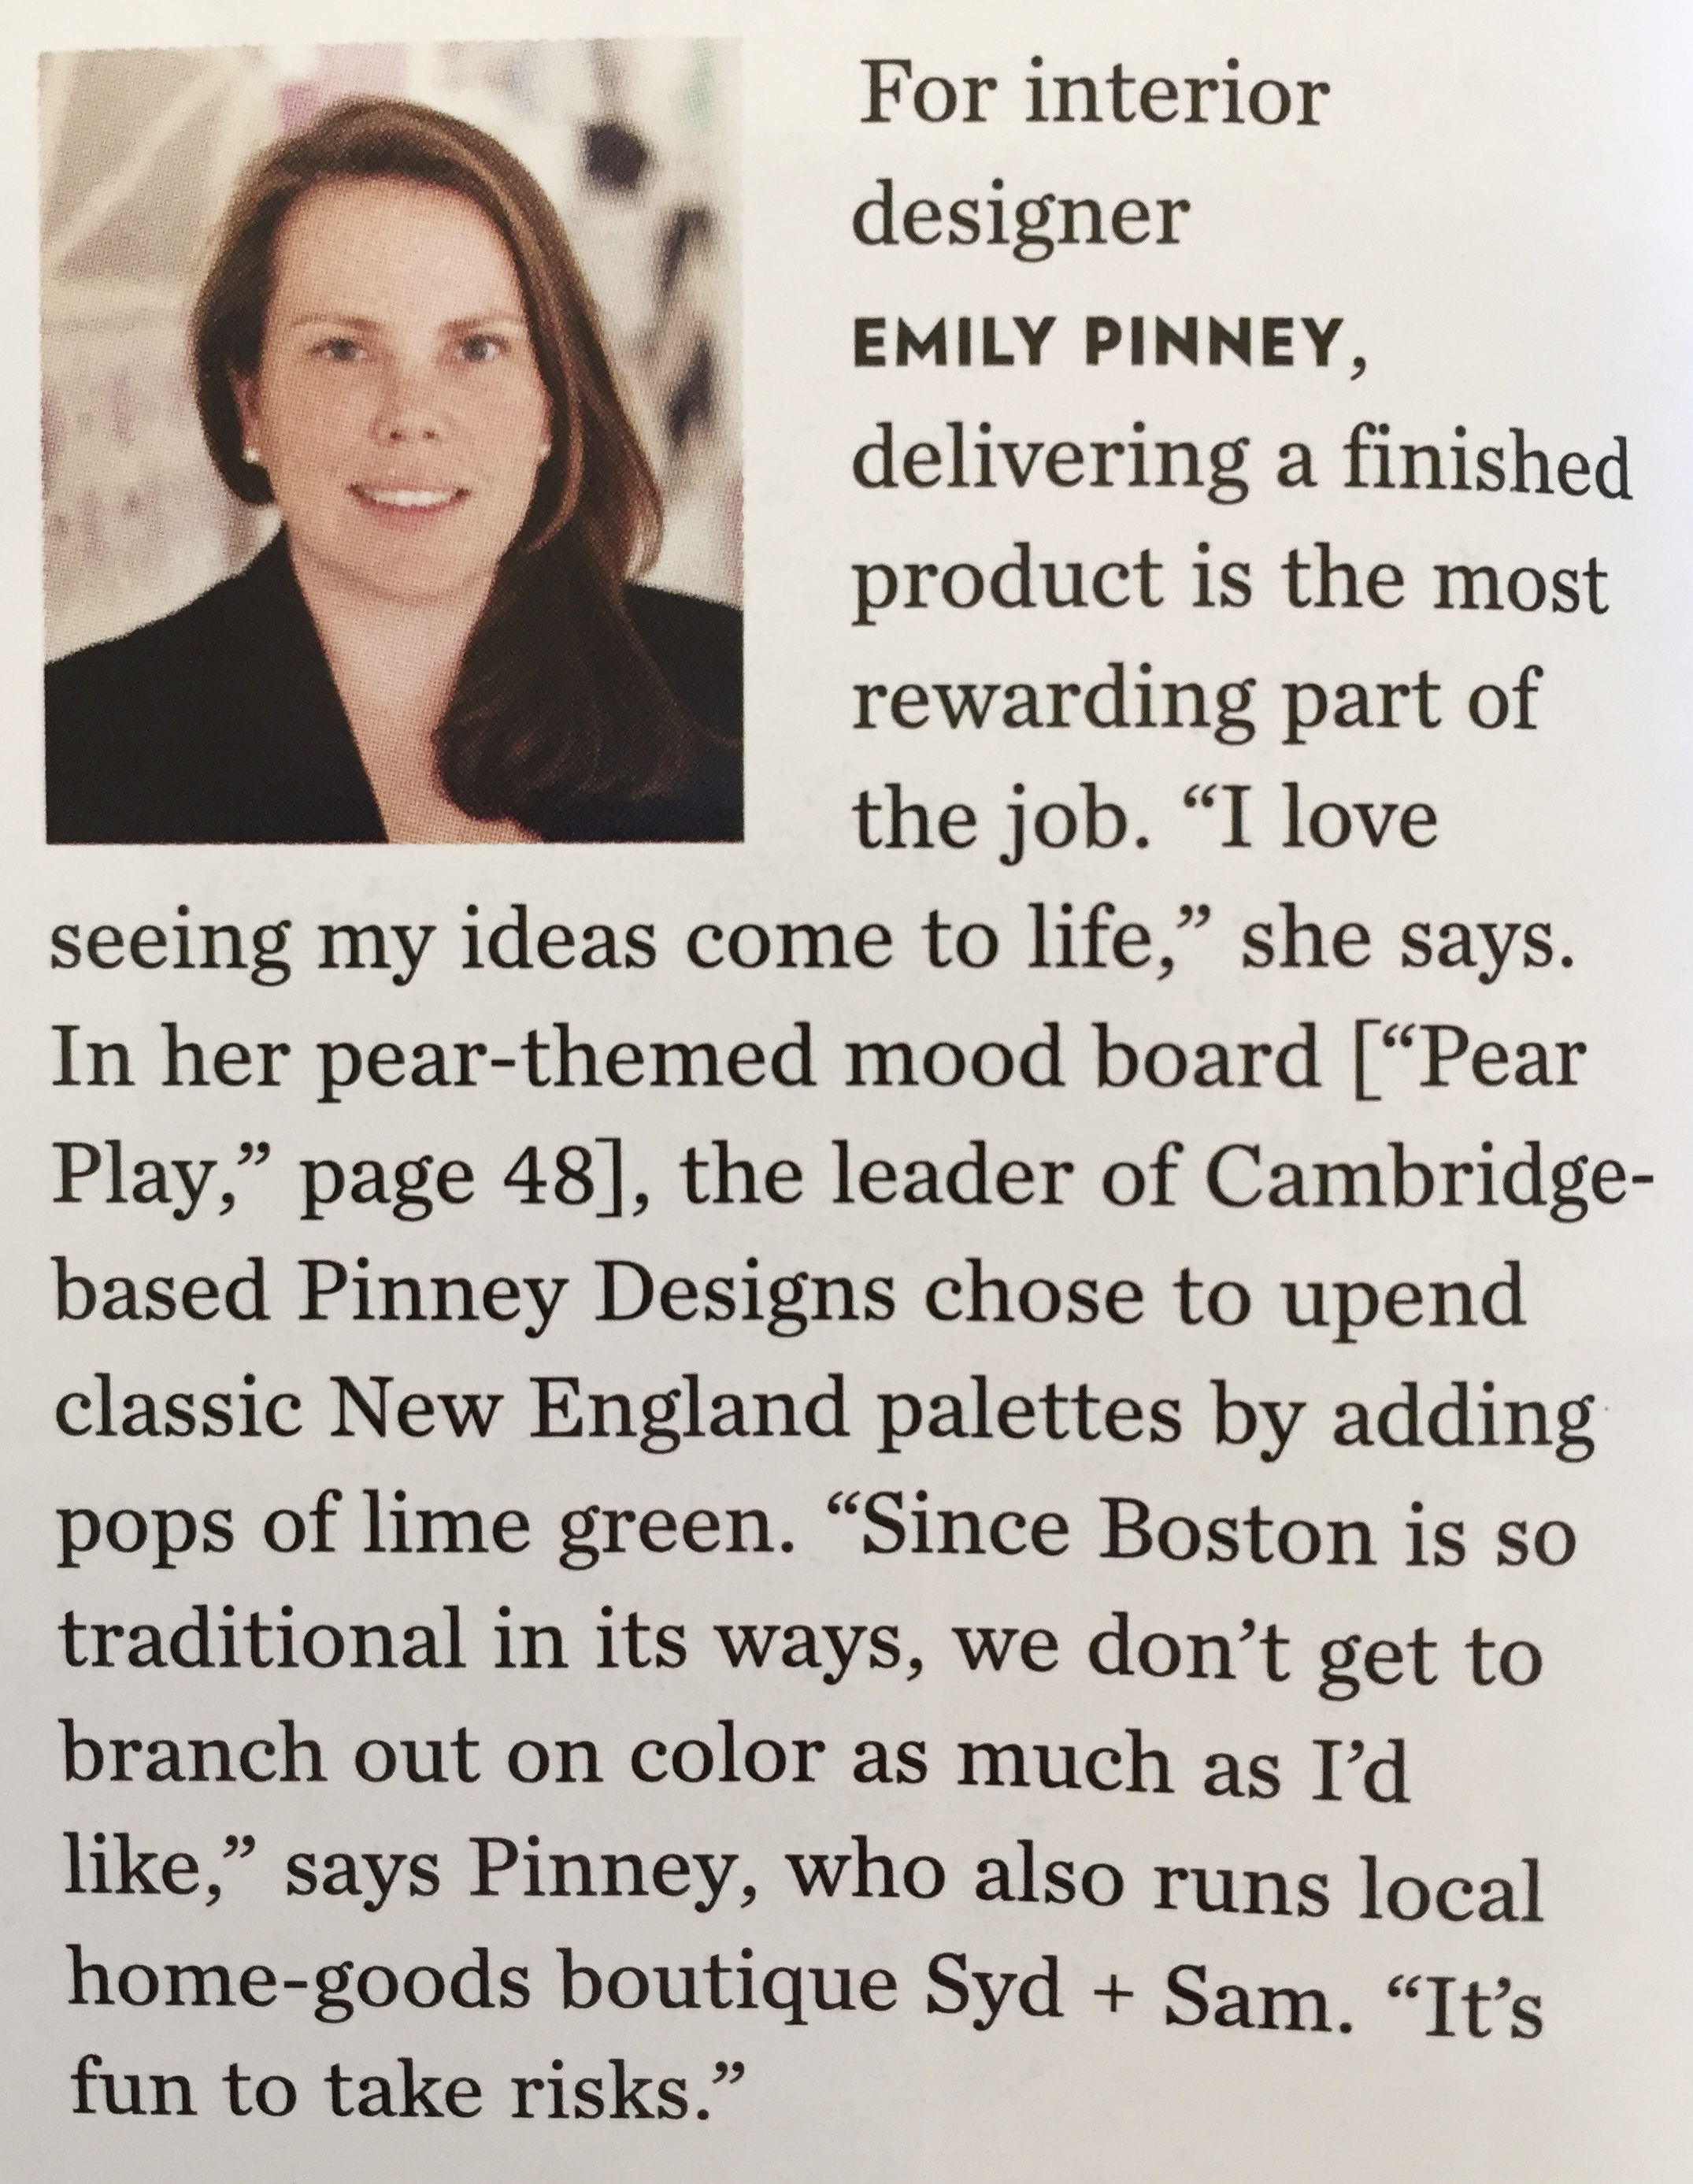 Designer Spotlight - In addition to pulling together an innovator palette for Boston Home, Emily was also featured in the designer spotlight.